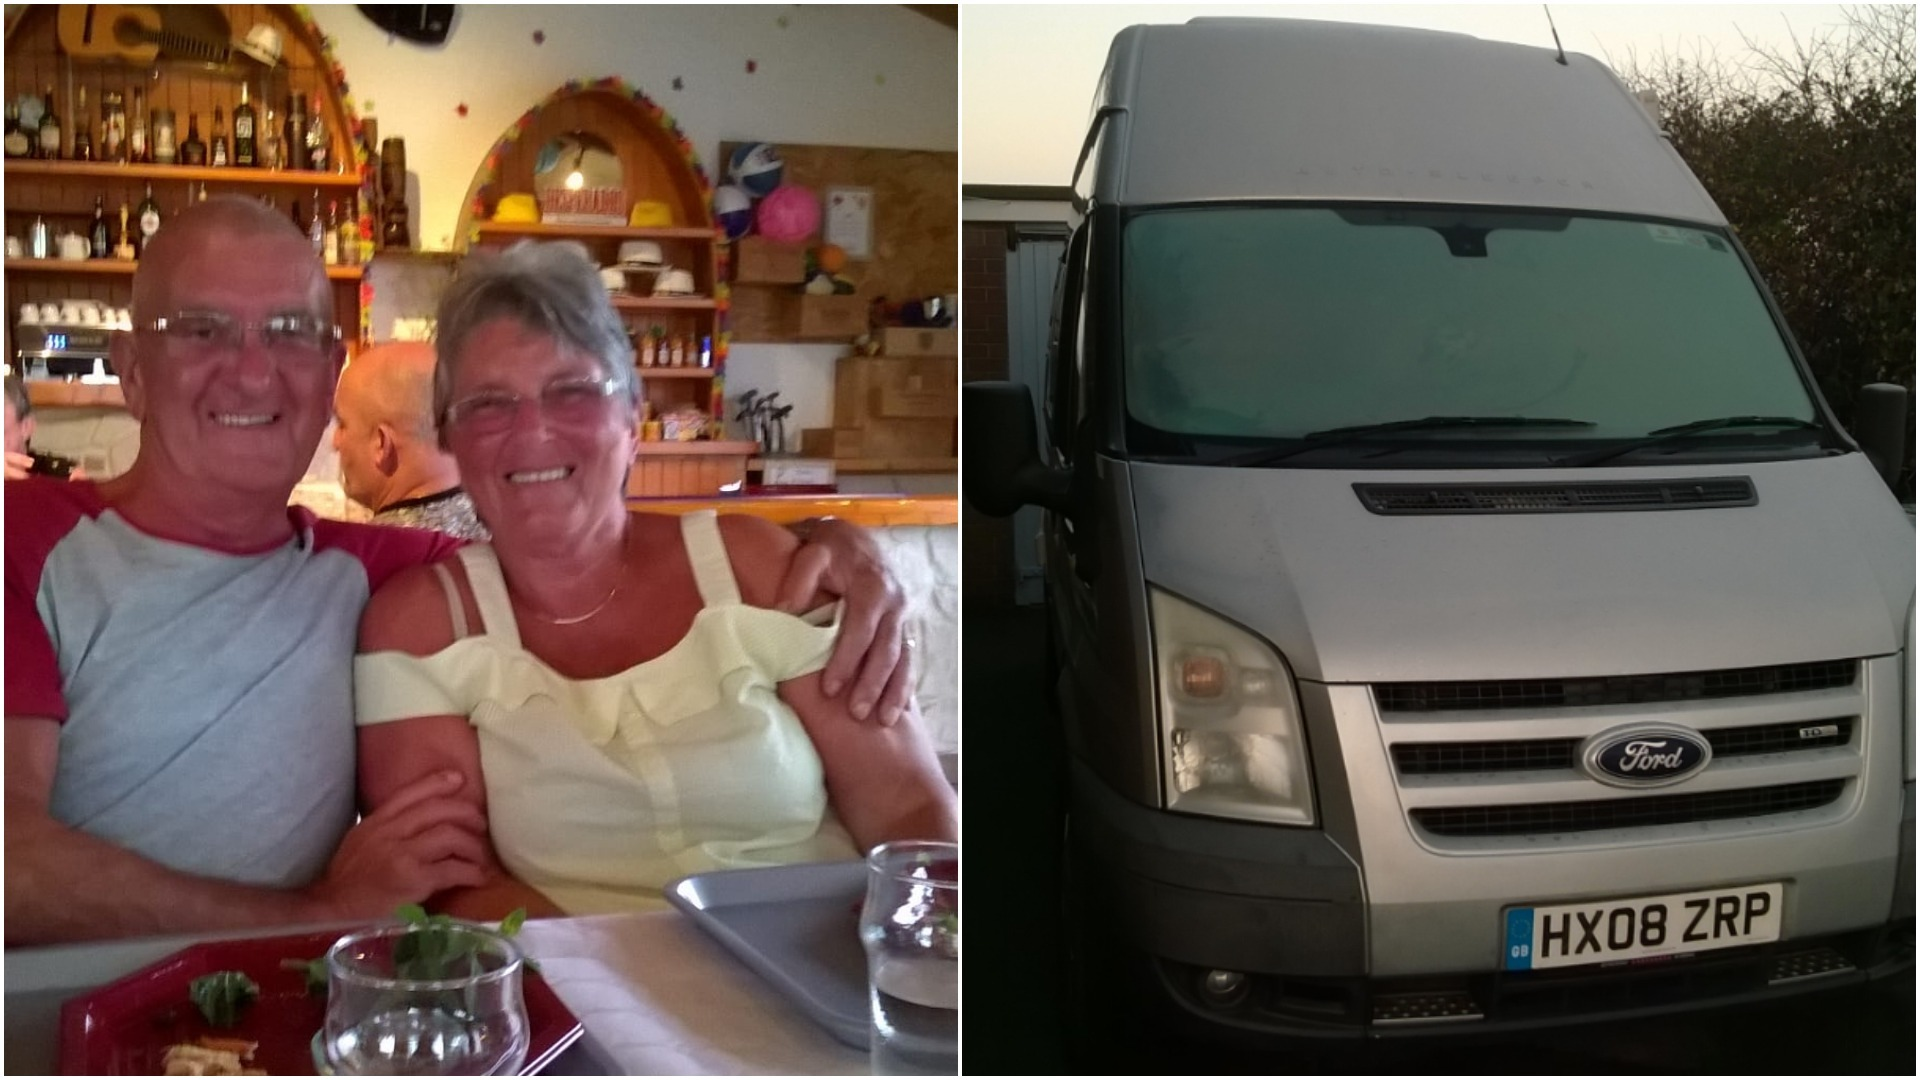 Campervan stolen from Rossett couple's driveway as they packed to go on holiday